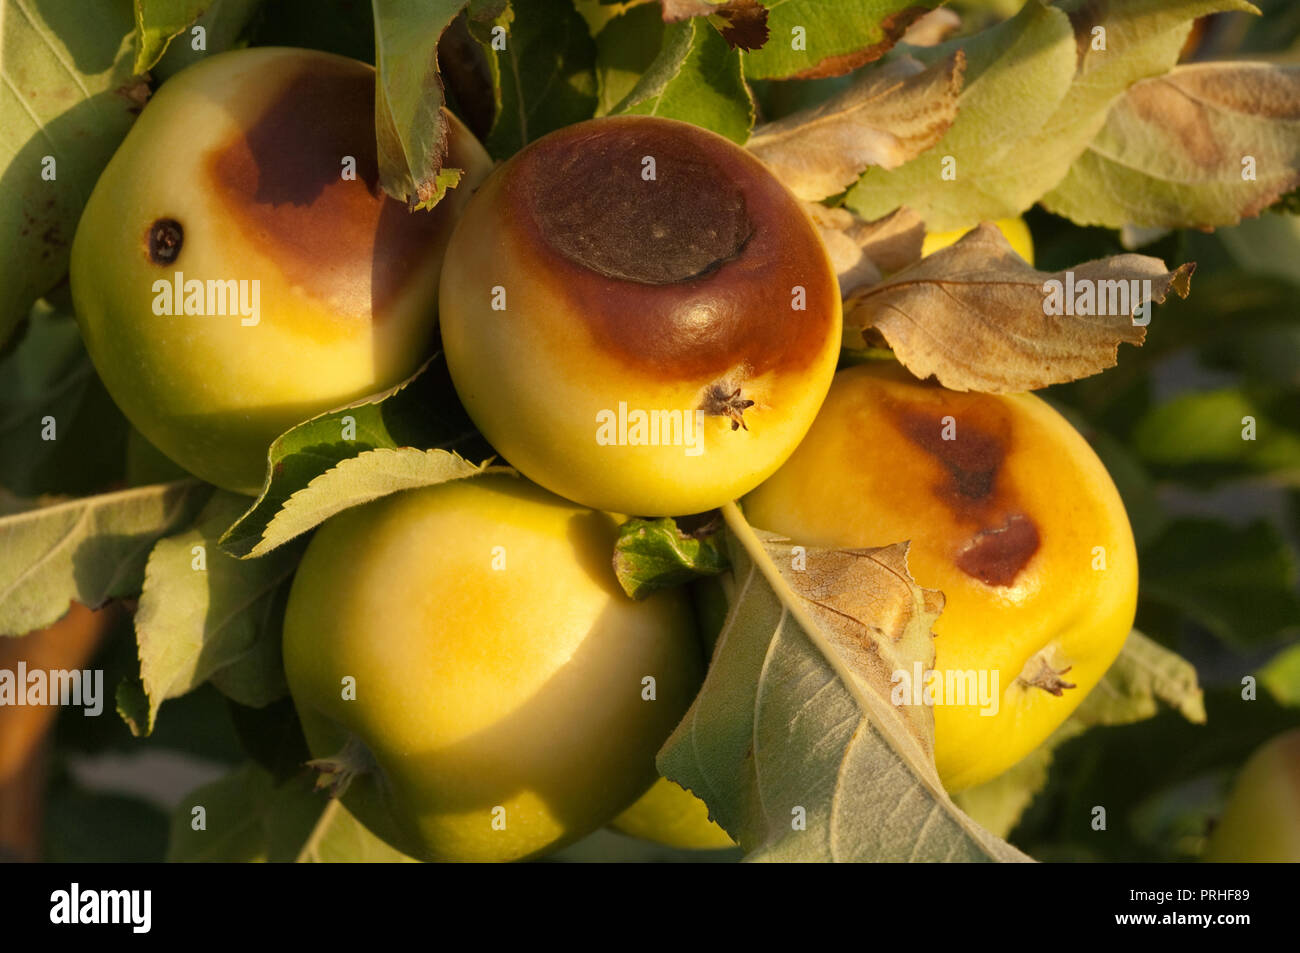 Granny Smith apples burnt by searing 47°C heat wave and strong Northerly winds, literally cooking the fruit on the trees. - Stock Image